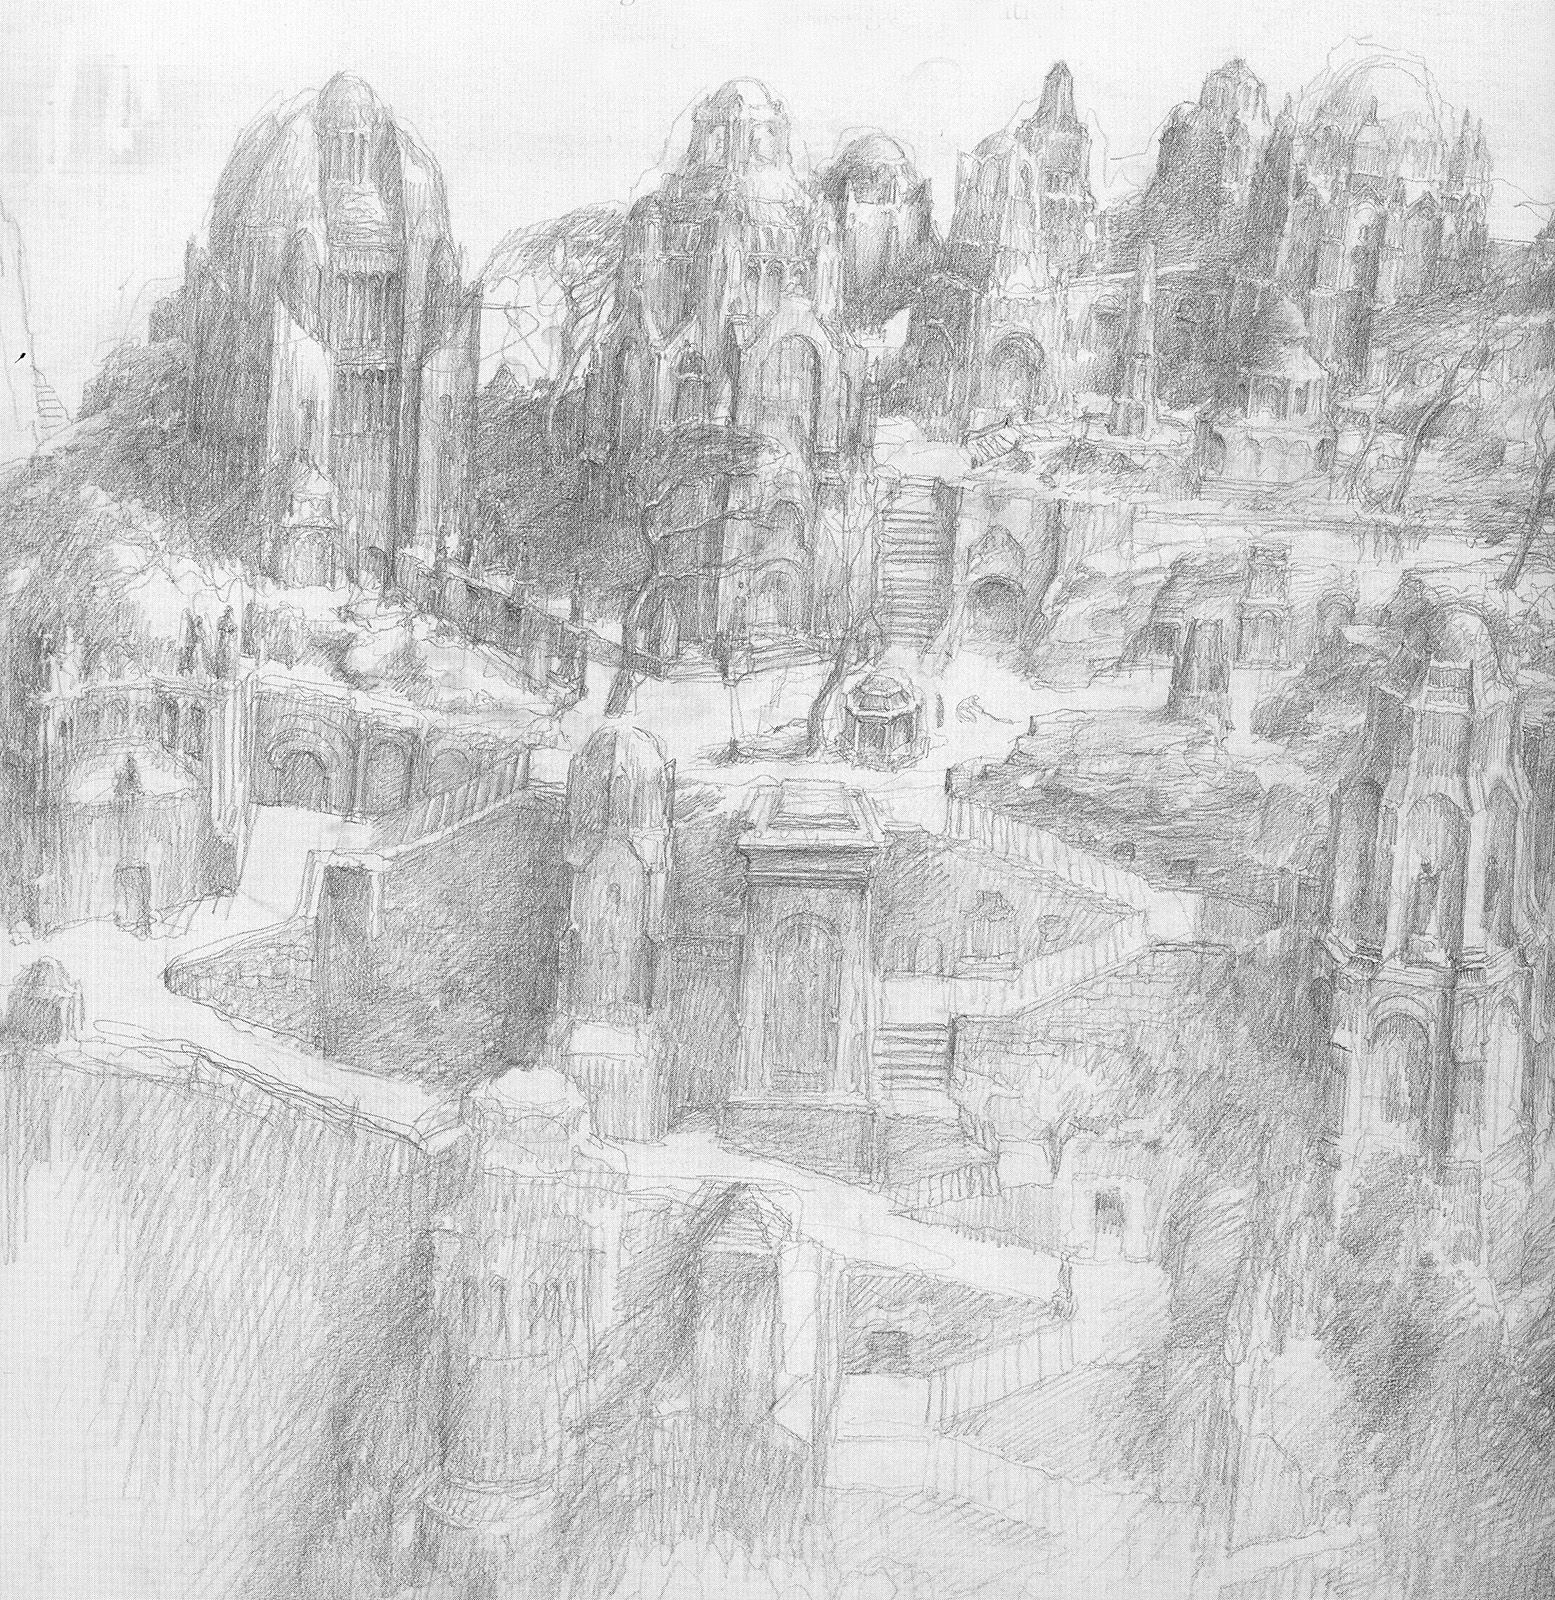 alan_lee_the lord of the rings_sketchbook_16_the stewards tomb01.jpg (1555×1600)